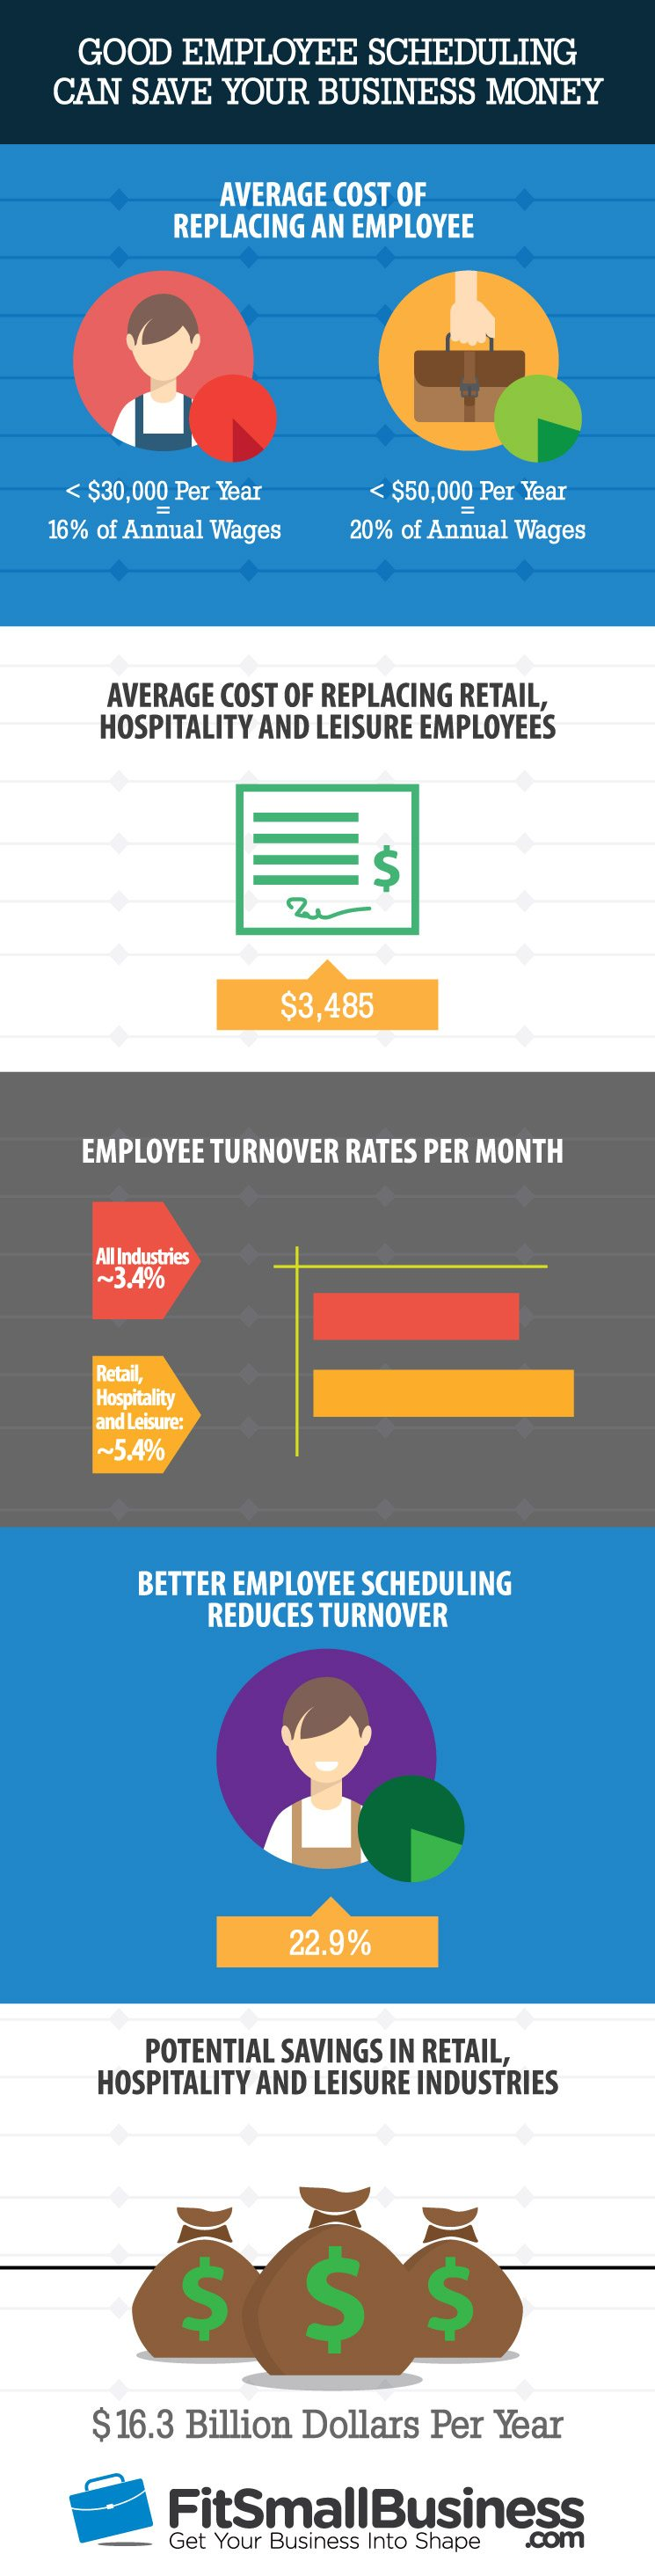 Good-Employee-Scheduling-745x2929-2